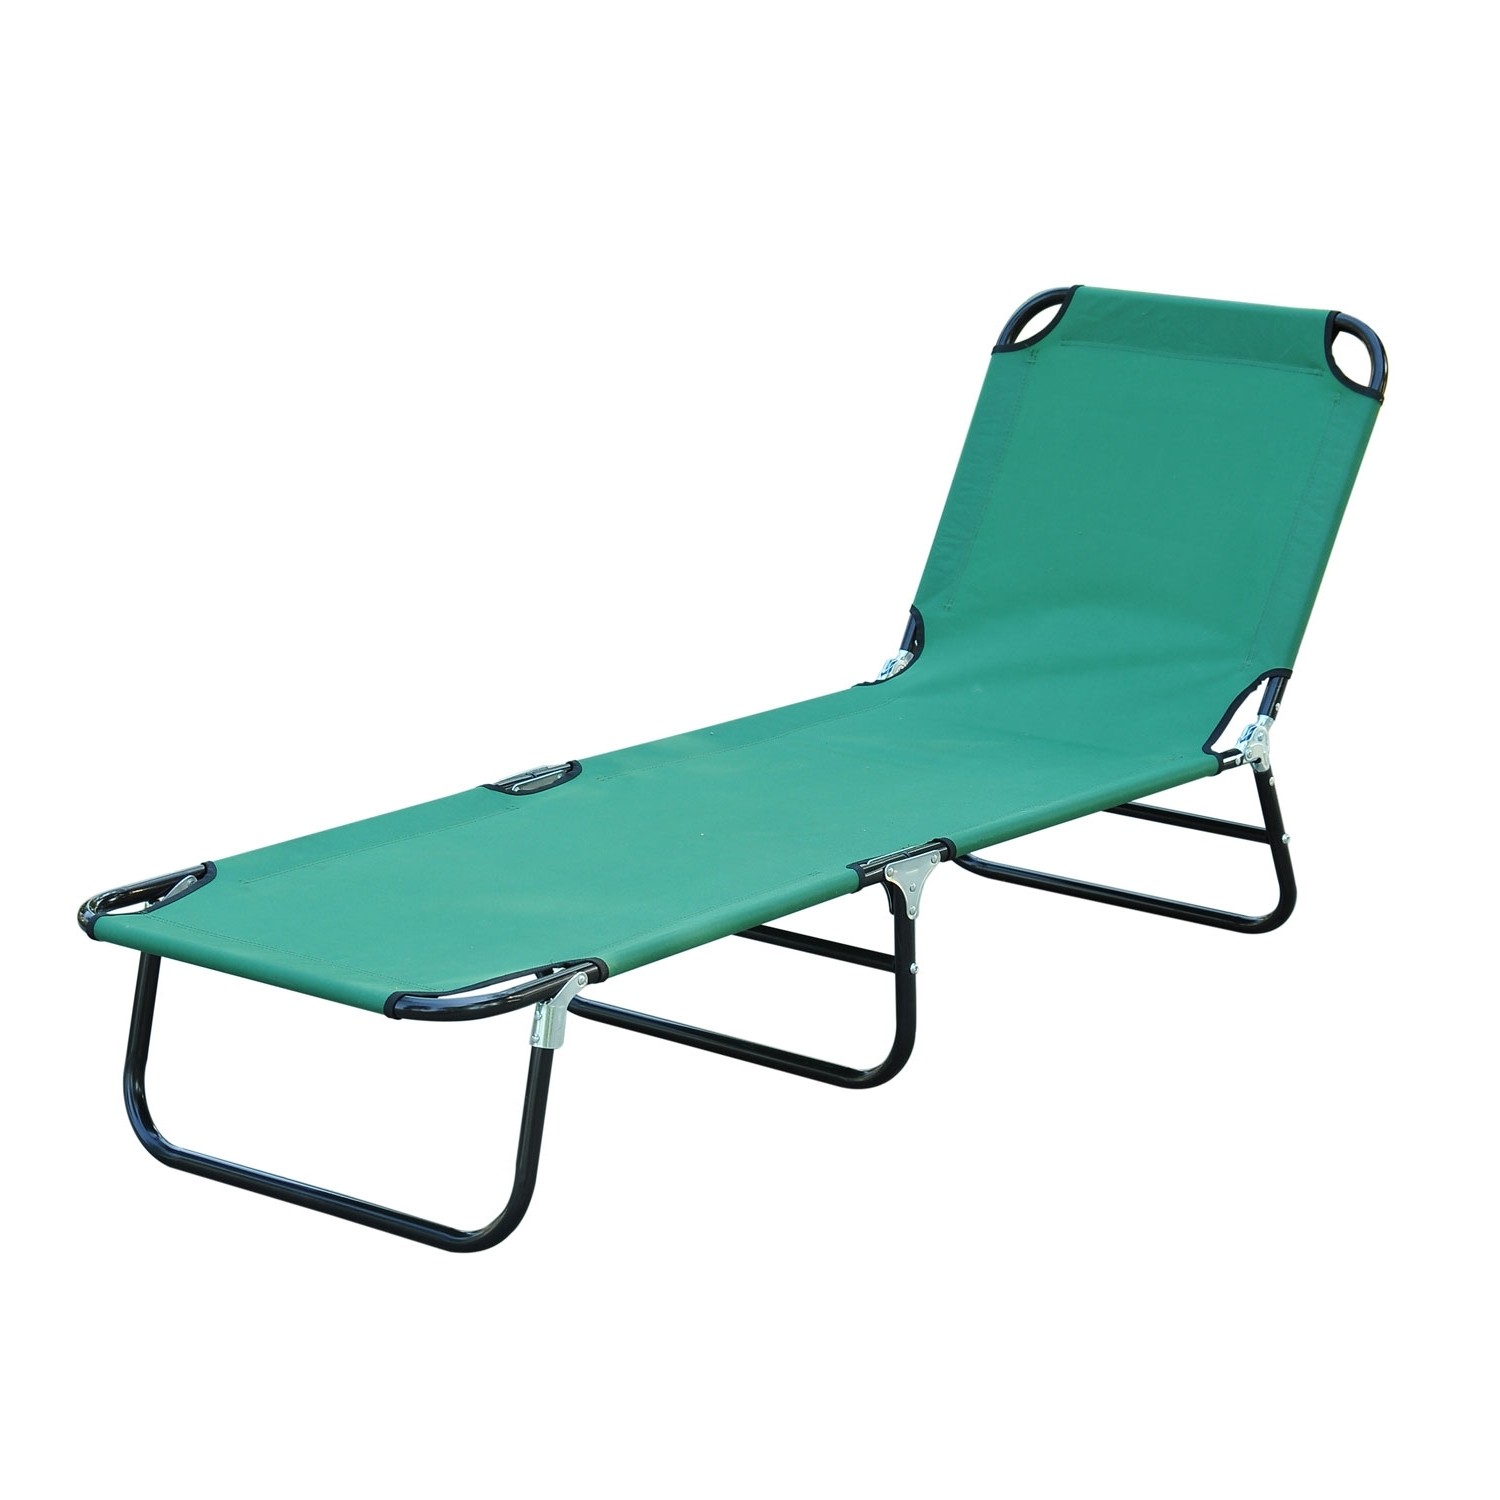 Chaise Lounge Chairs With Face Hole With Regard To Popular Beach Lounge Chair With Face Hole • Lounge Chairs Ideas (View 6 of 15)